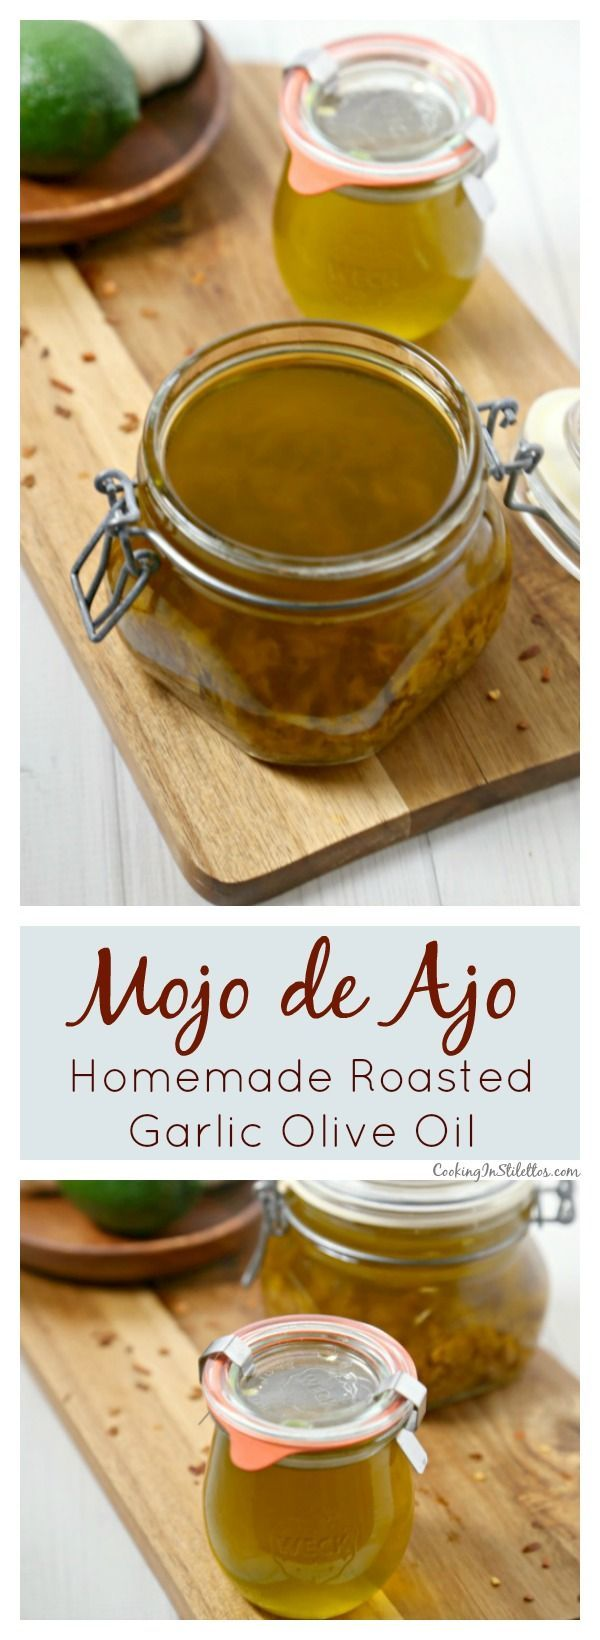 Liquid Gold aka Mojo de Ajo from CookingInStilettos.com is a homemade roasted garlic oil flavored with hints of lime and spice and couldn't be easier to make. For recipes that need a bit of a garlic punch, this Mojo de Ajo will be your culinary secret | @CookInStilettos